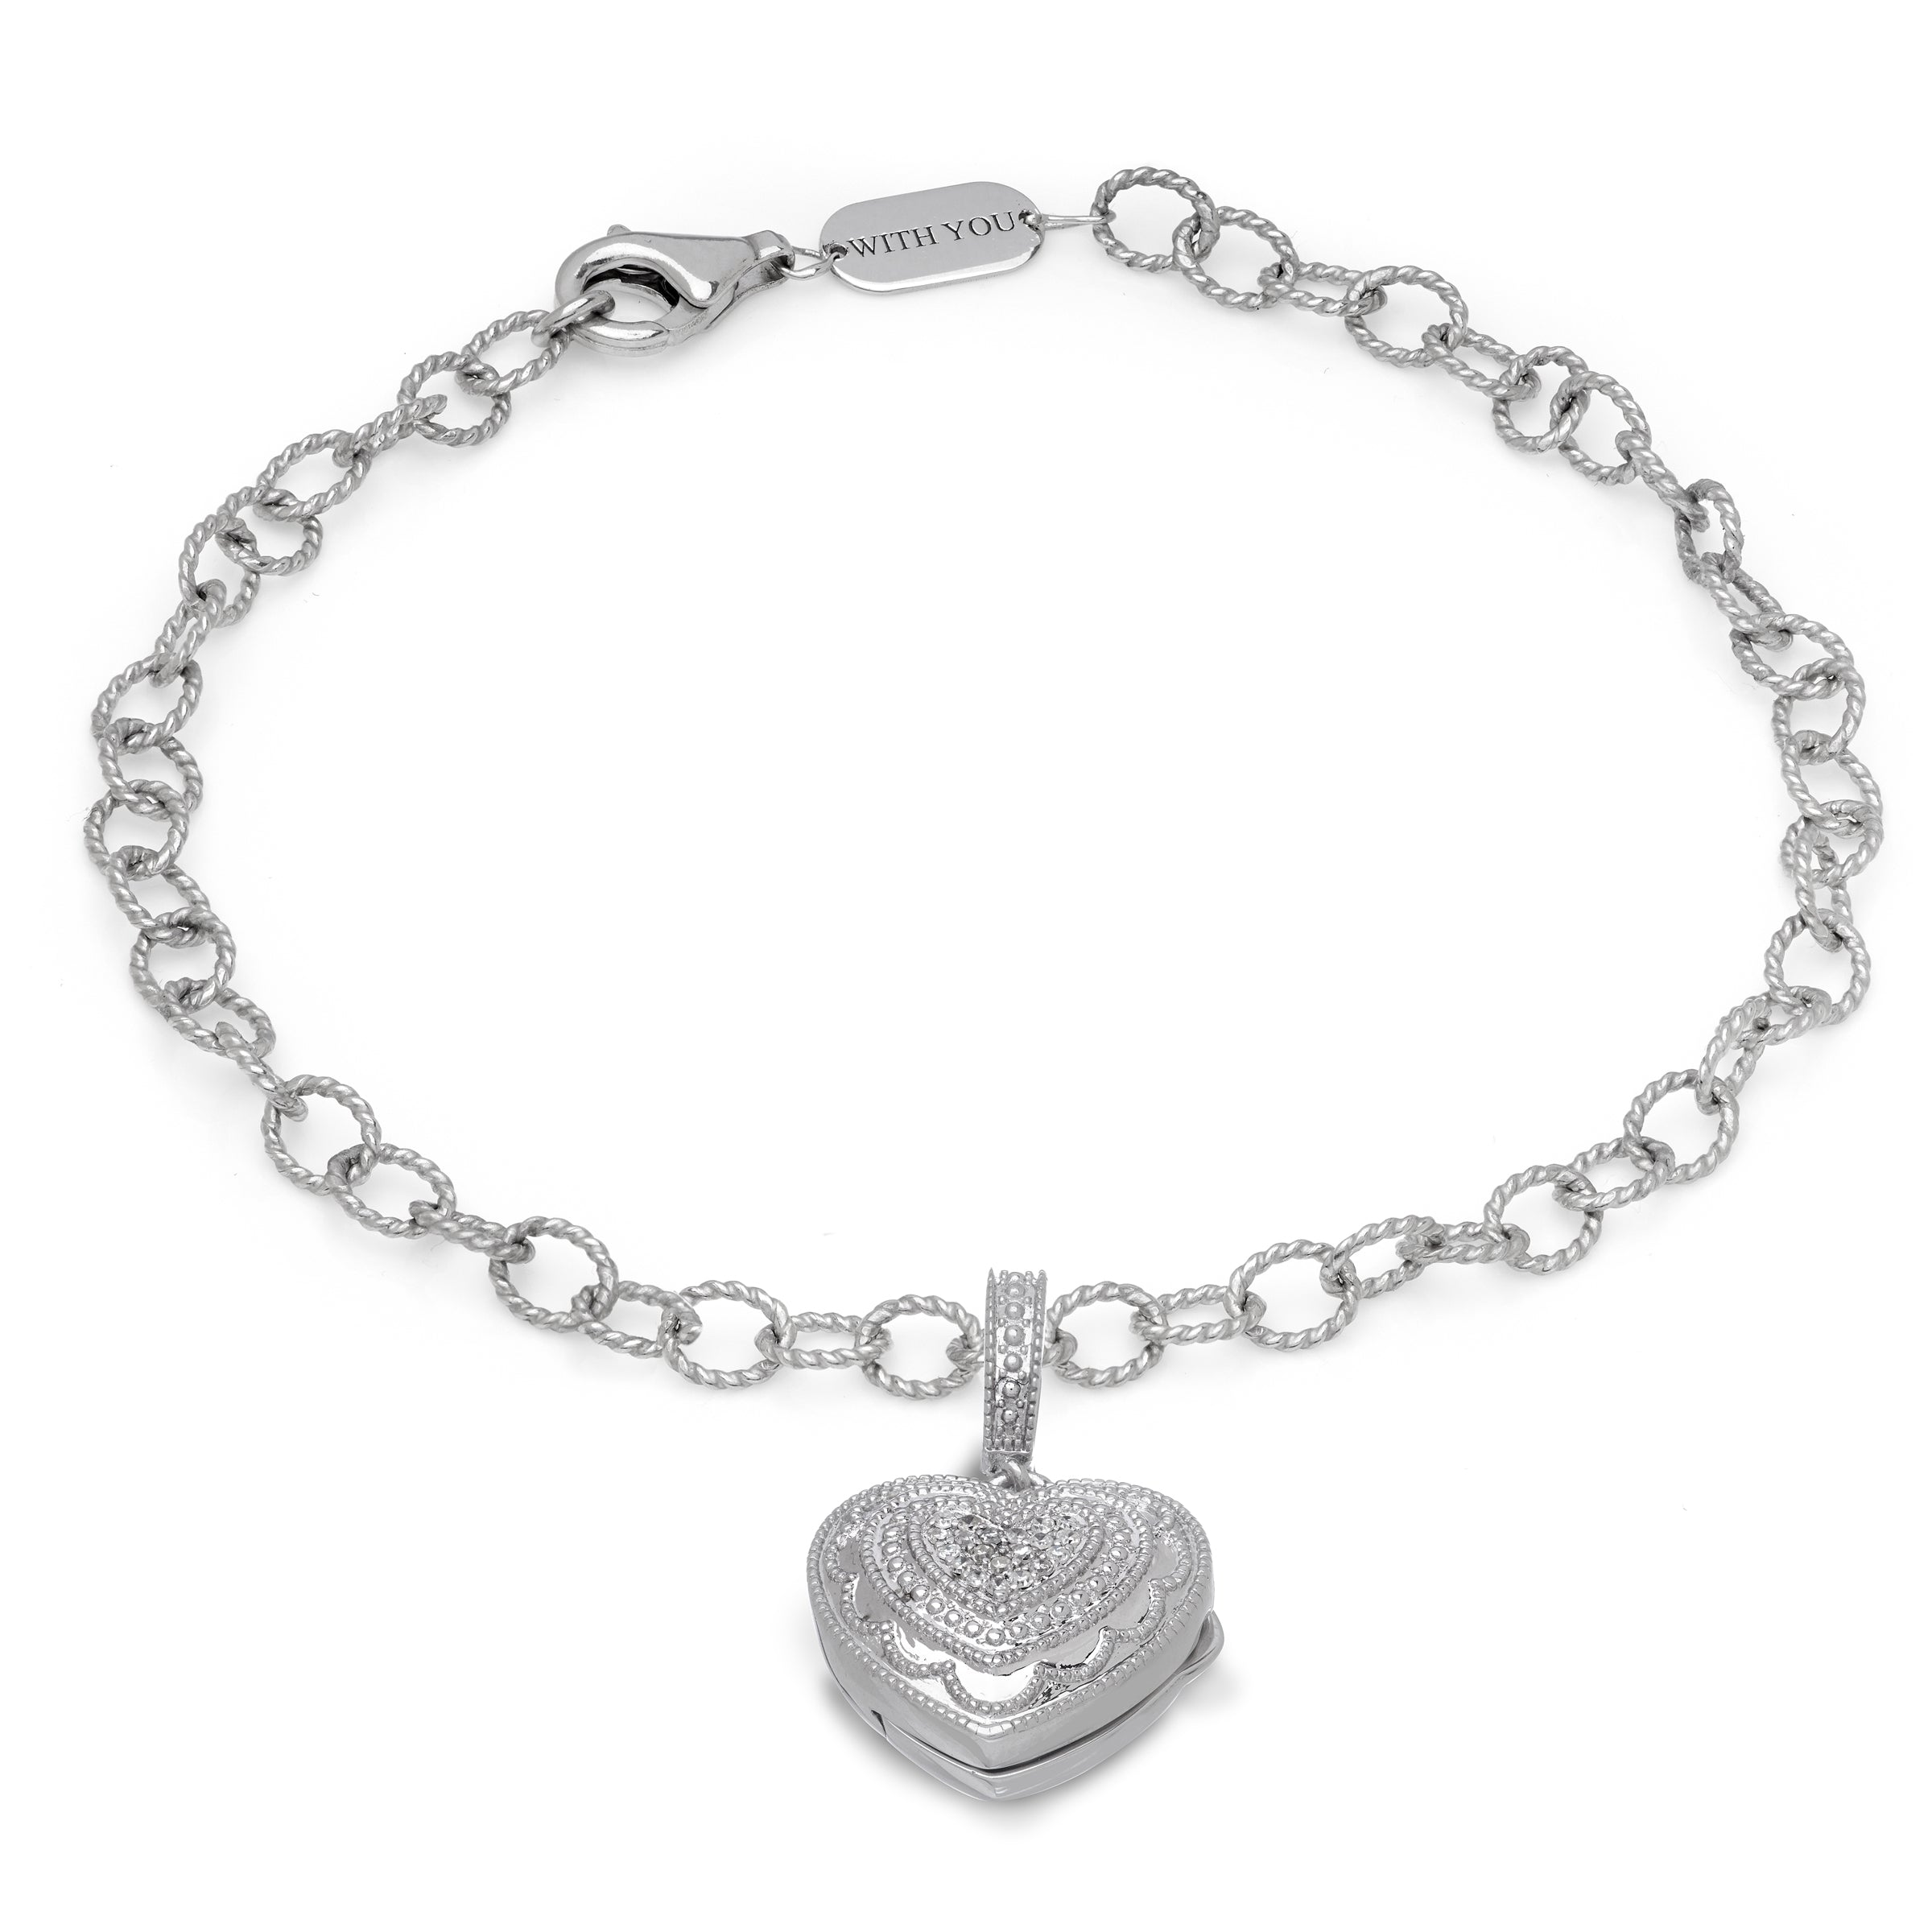 d6975cfa3 Pavé Diamond Heart Locket Bracelet, 9 Inches, Sterling Silver | Long ...